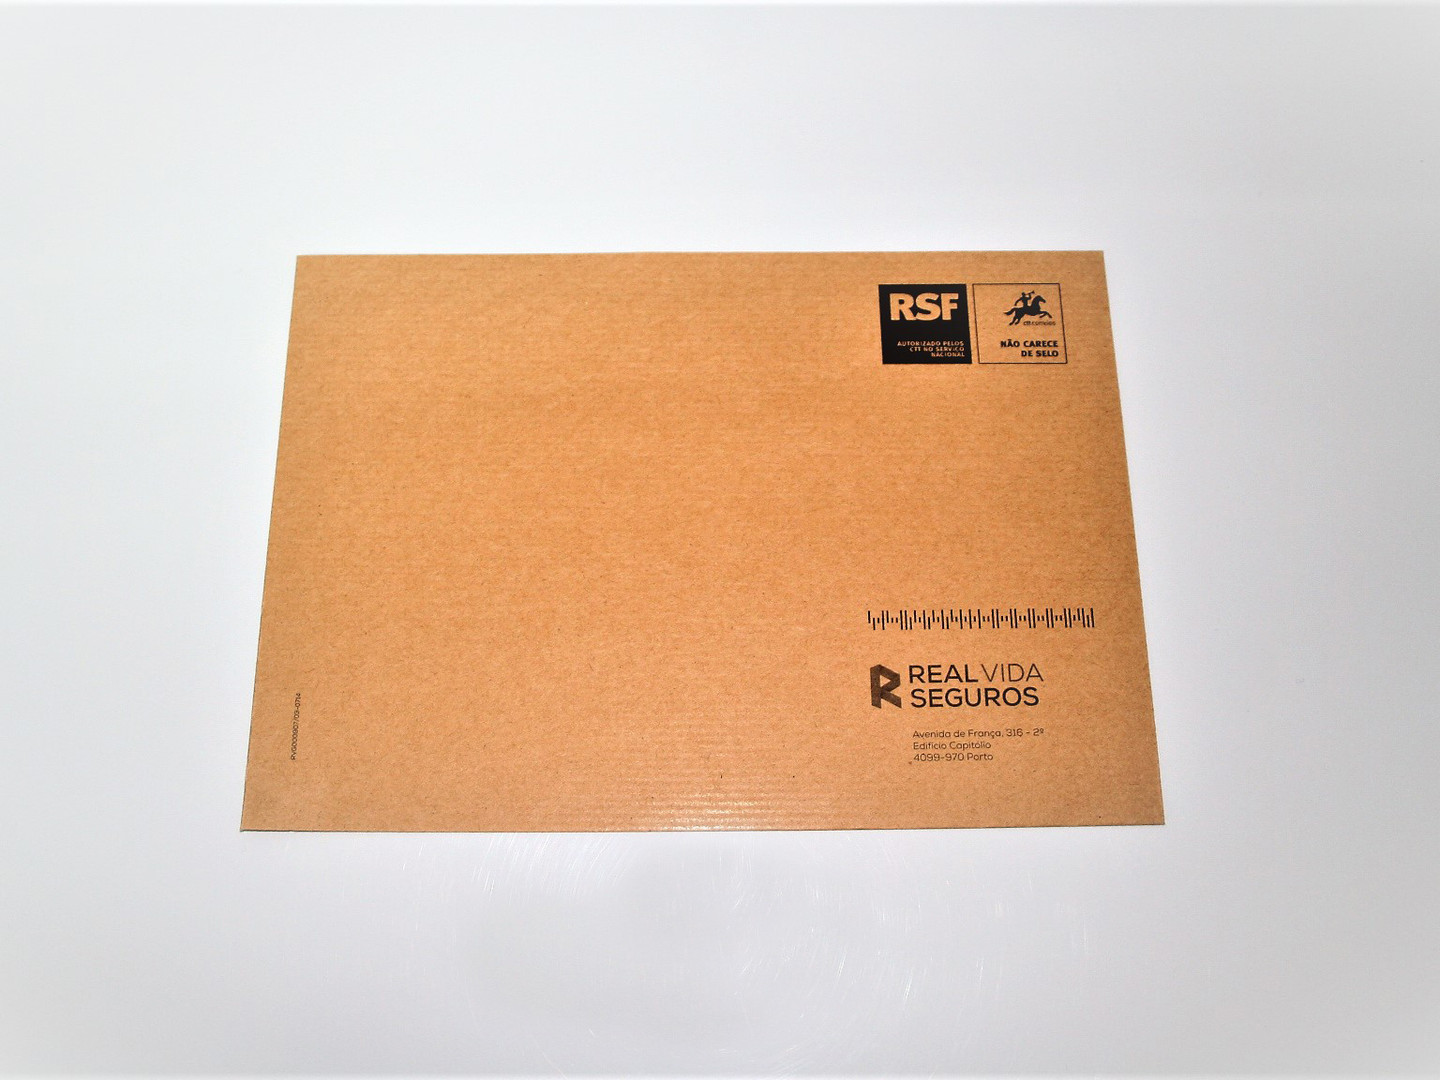 Envelope REAL VIDA.JPG